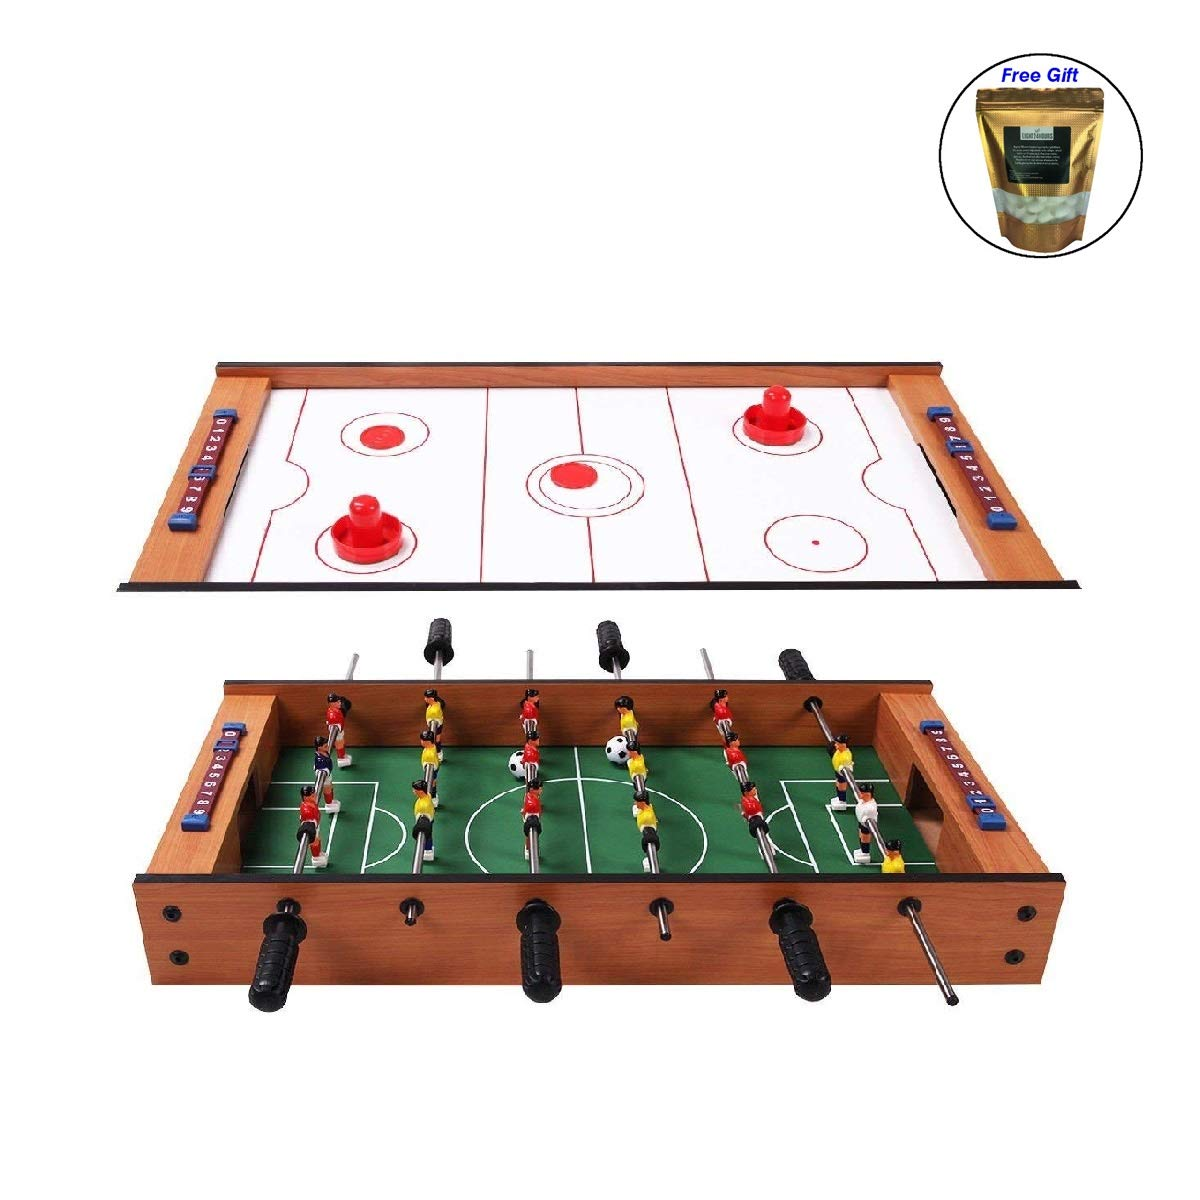 CWY 2 in 1 in Outdoor Air Hockey Foosball Game Table Only by eight24hours Organic Natural Silk Cocoons